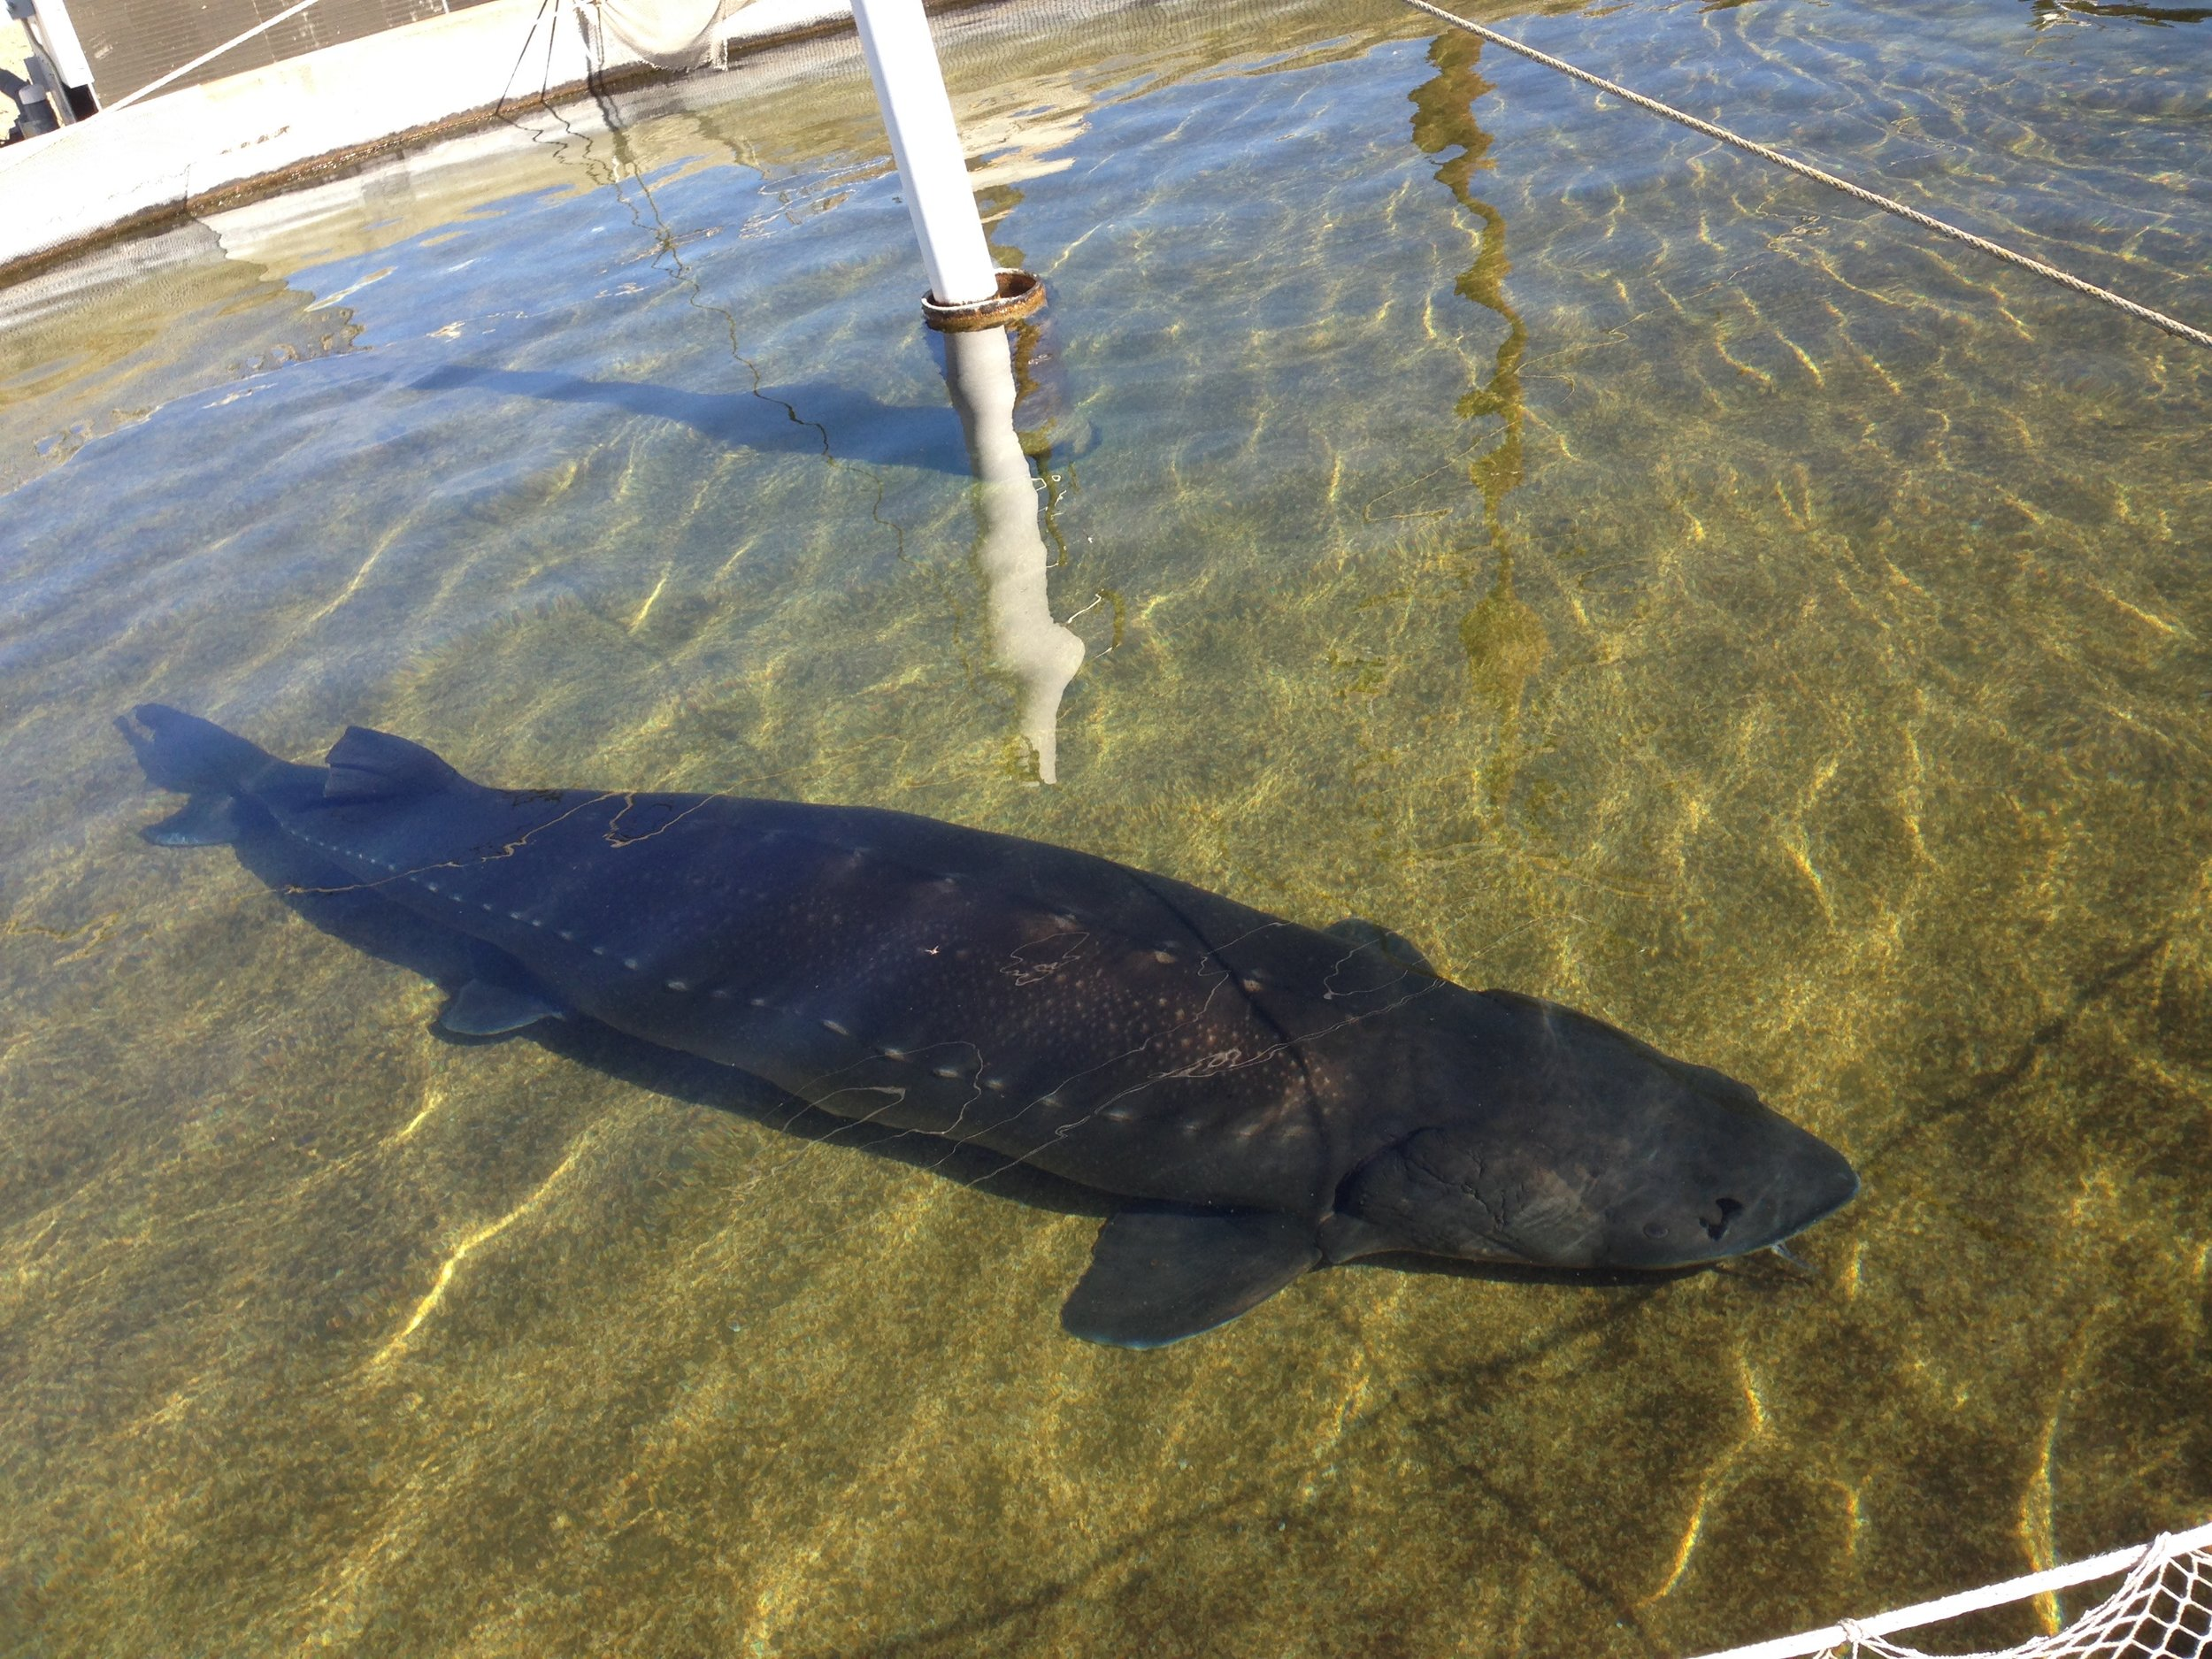 Large sturgeon grown for caviar production in tank-based systems.